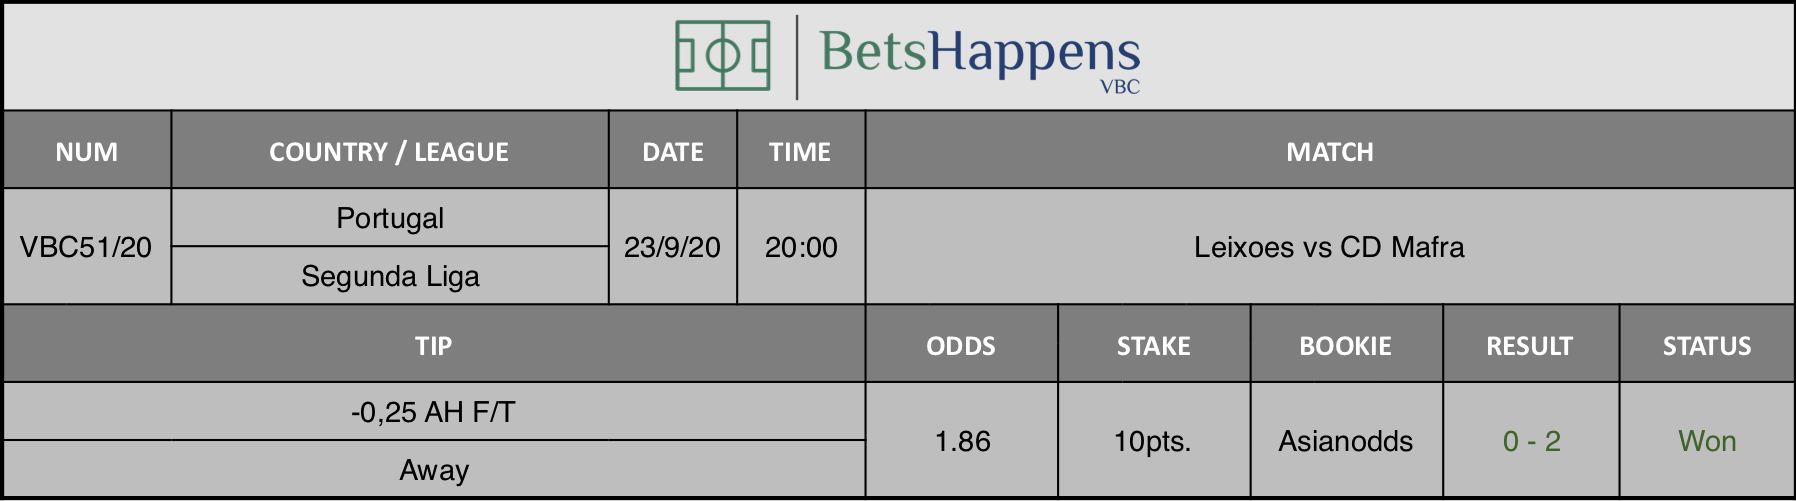 Results of our advice for the Leixoes vs CD Mafra match in which -0.25 AH F / T Away is recommended.